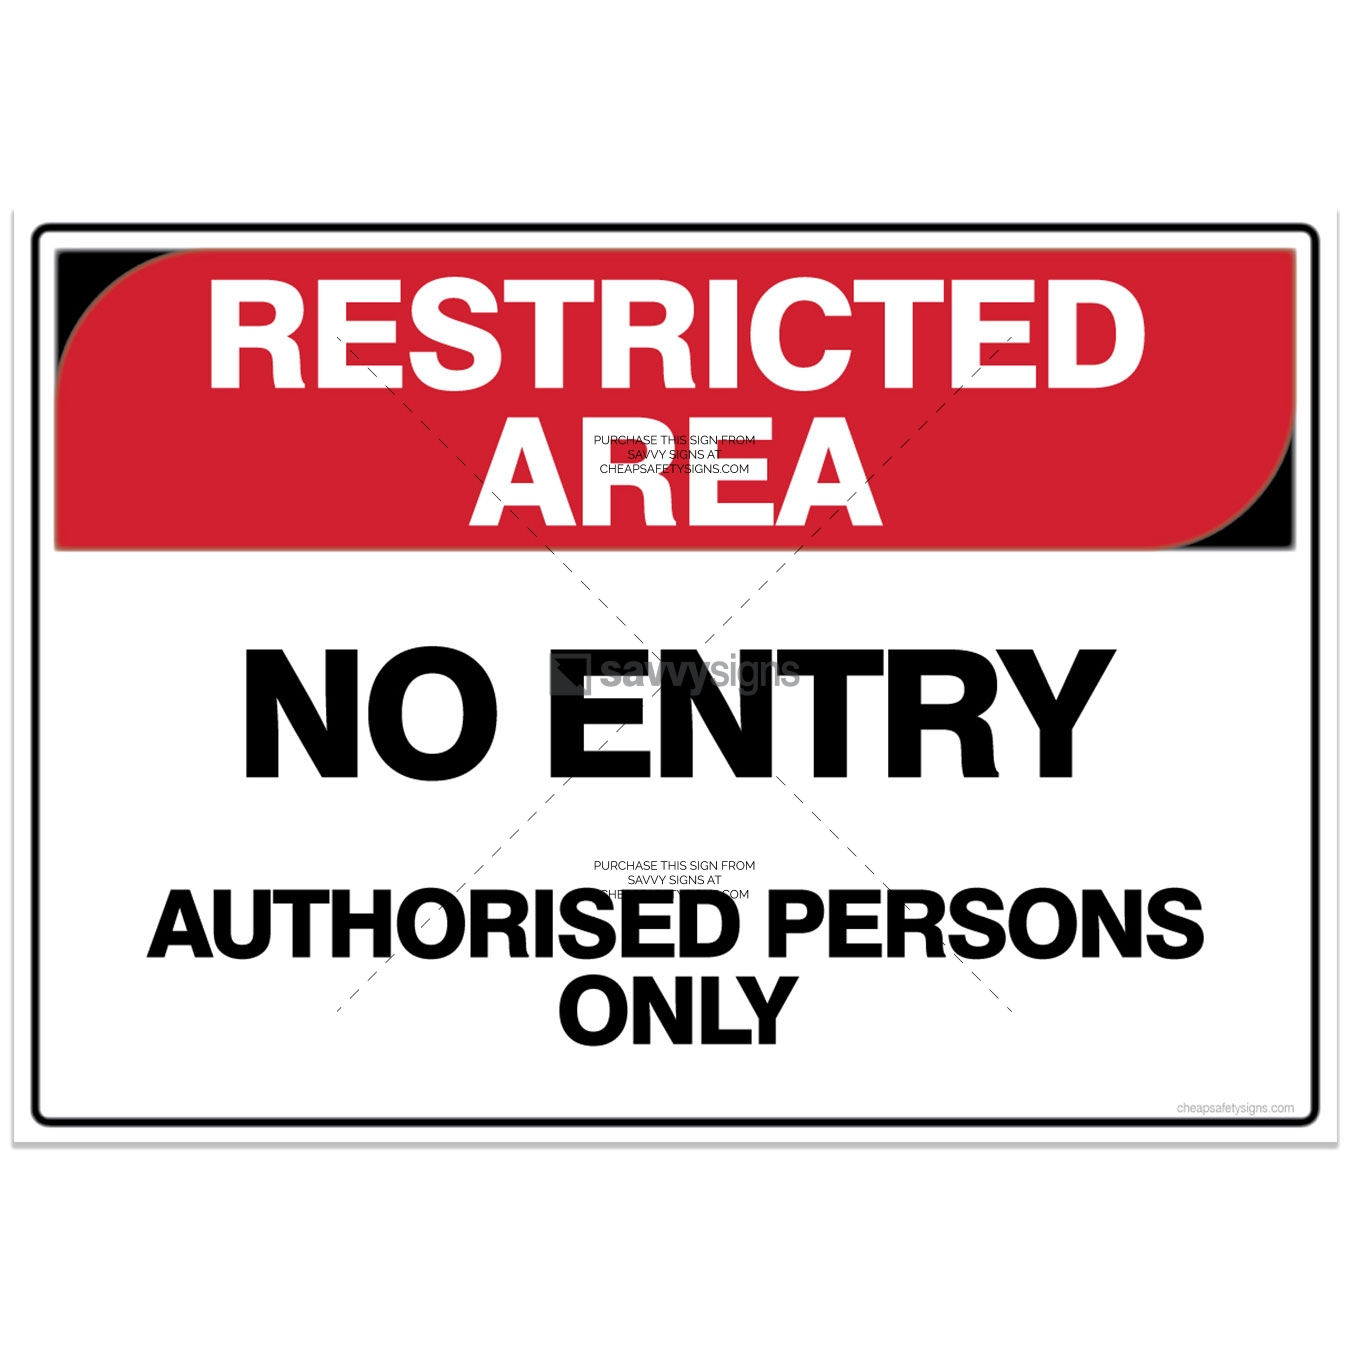 SSRES3023-RESTRICTED-AREA-Workplace-Safety-Signs_Savvy-Signs_v2